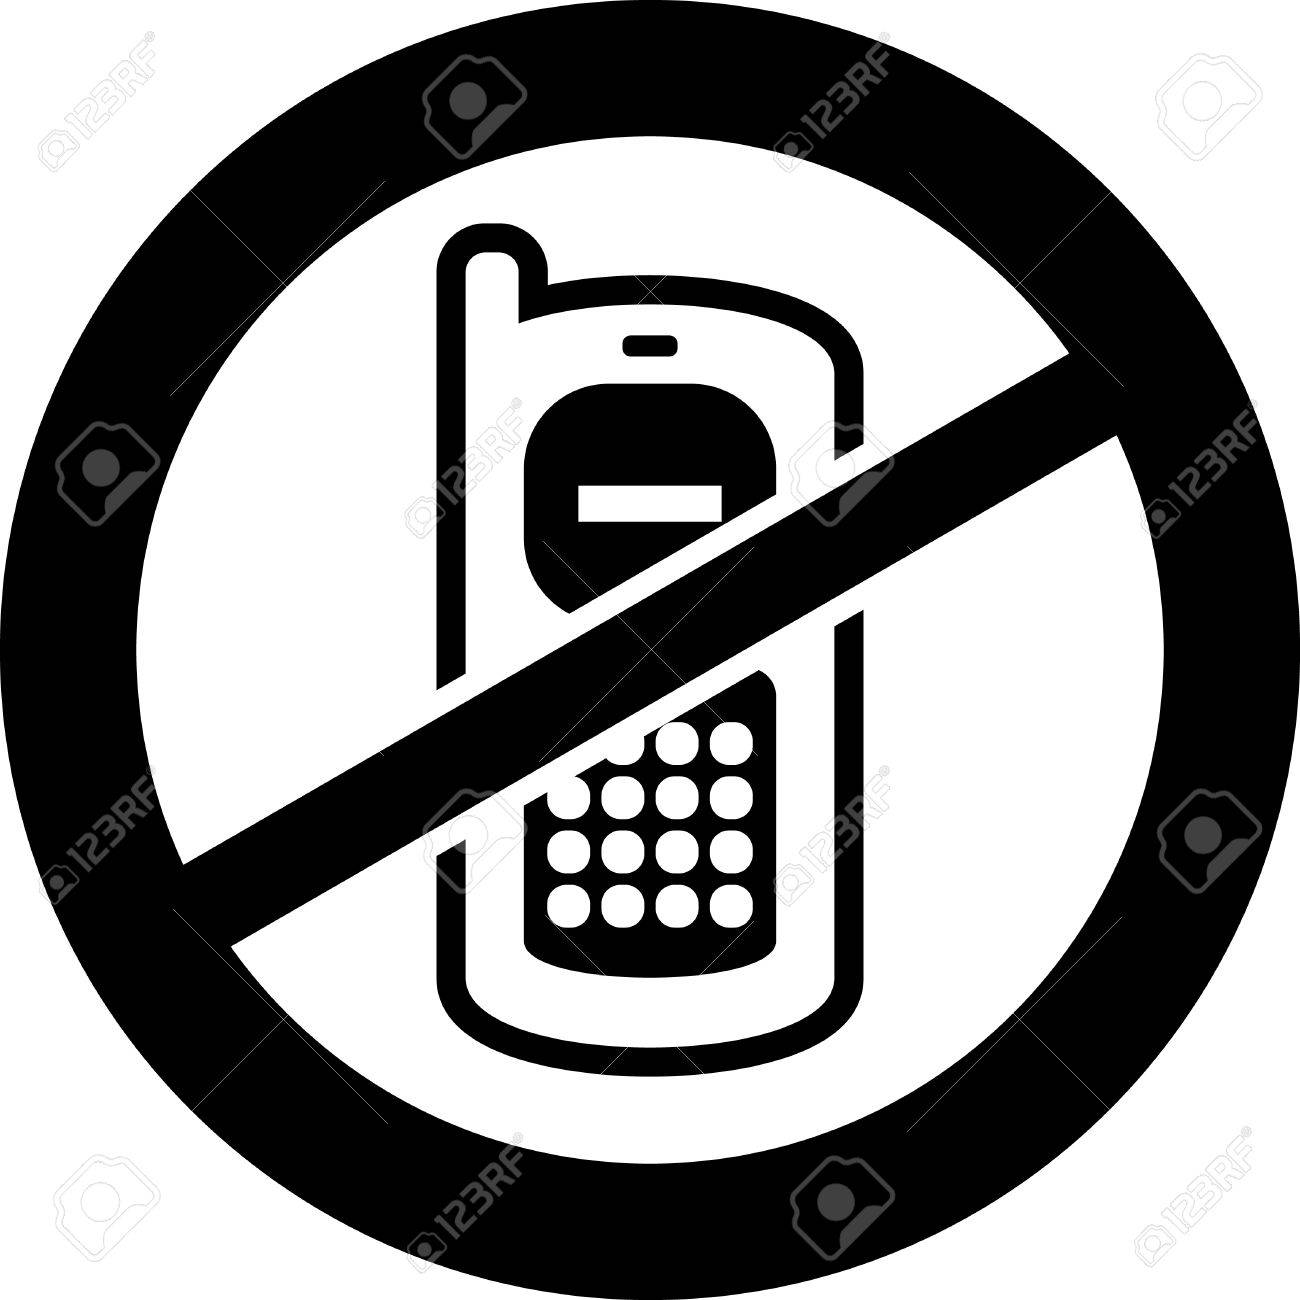 No Cell Phone Clipart Black And White.